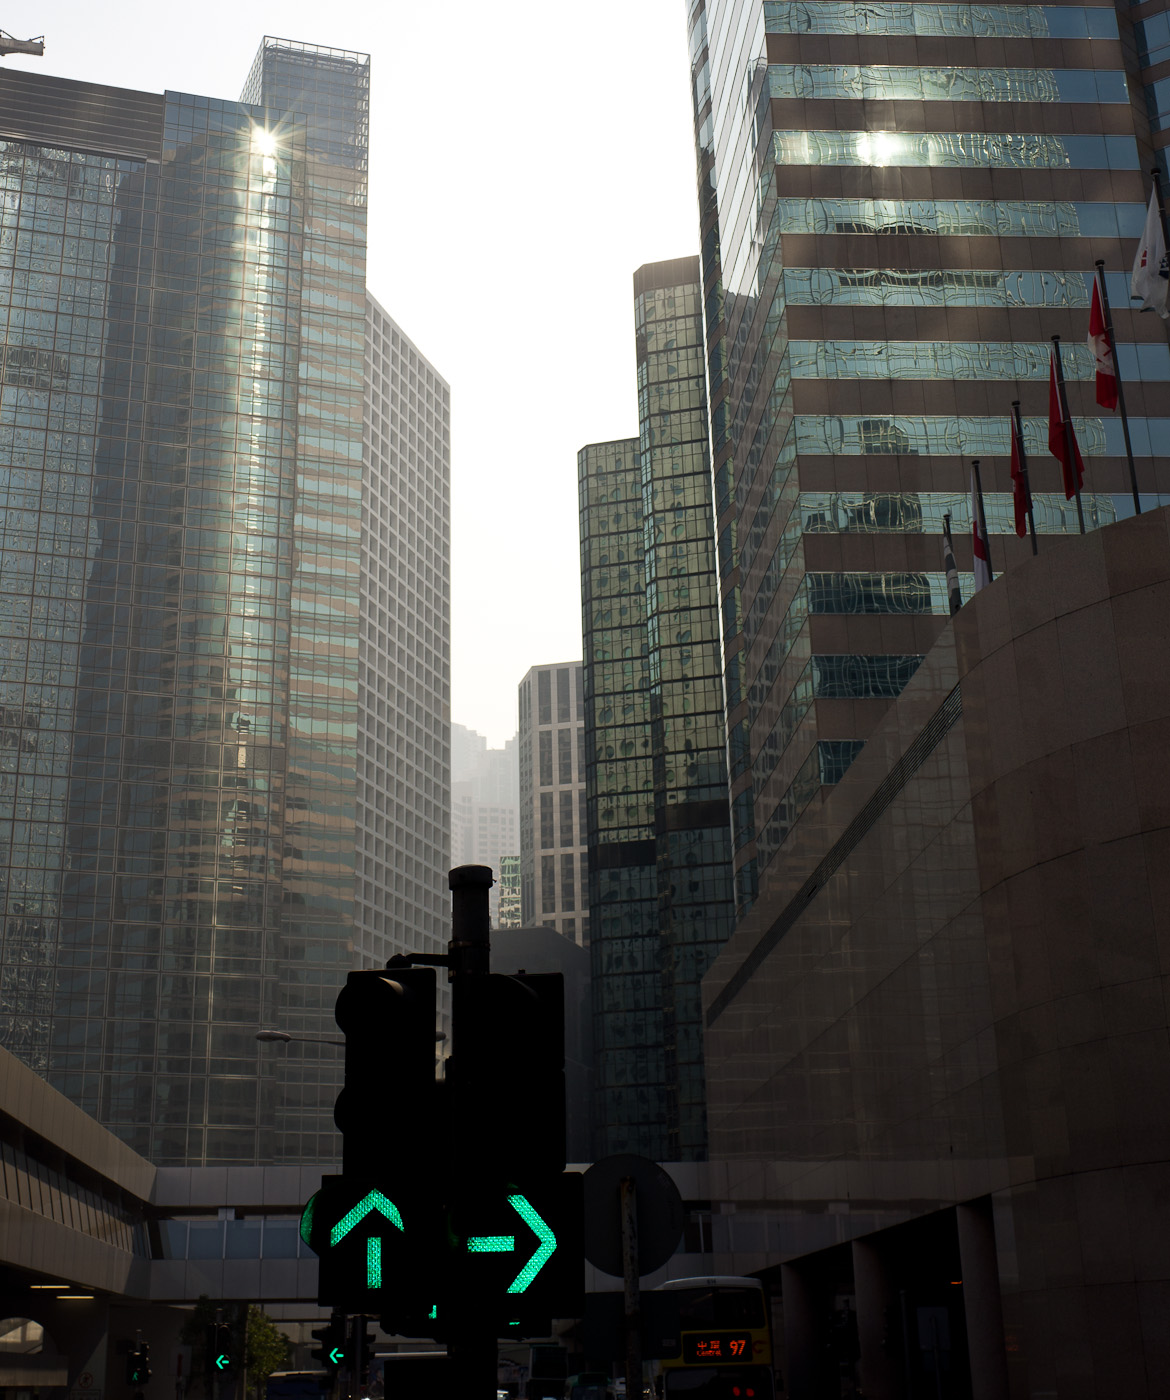 A set of trafic lights among very high buildings in Hong-Kong. Sony NEX-5n, Biogon 25